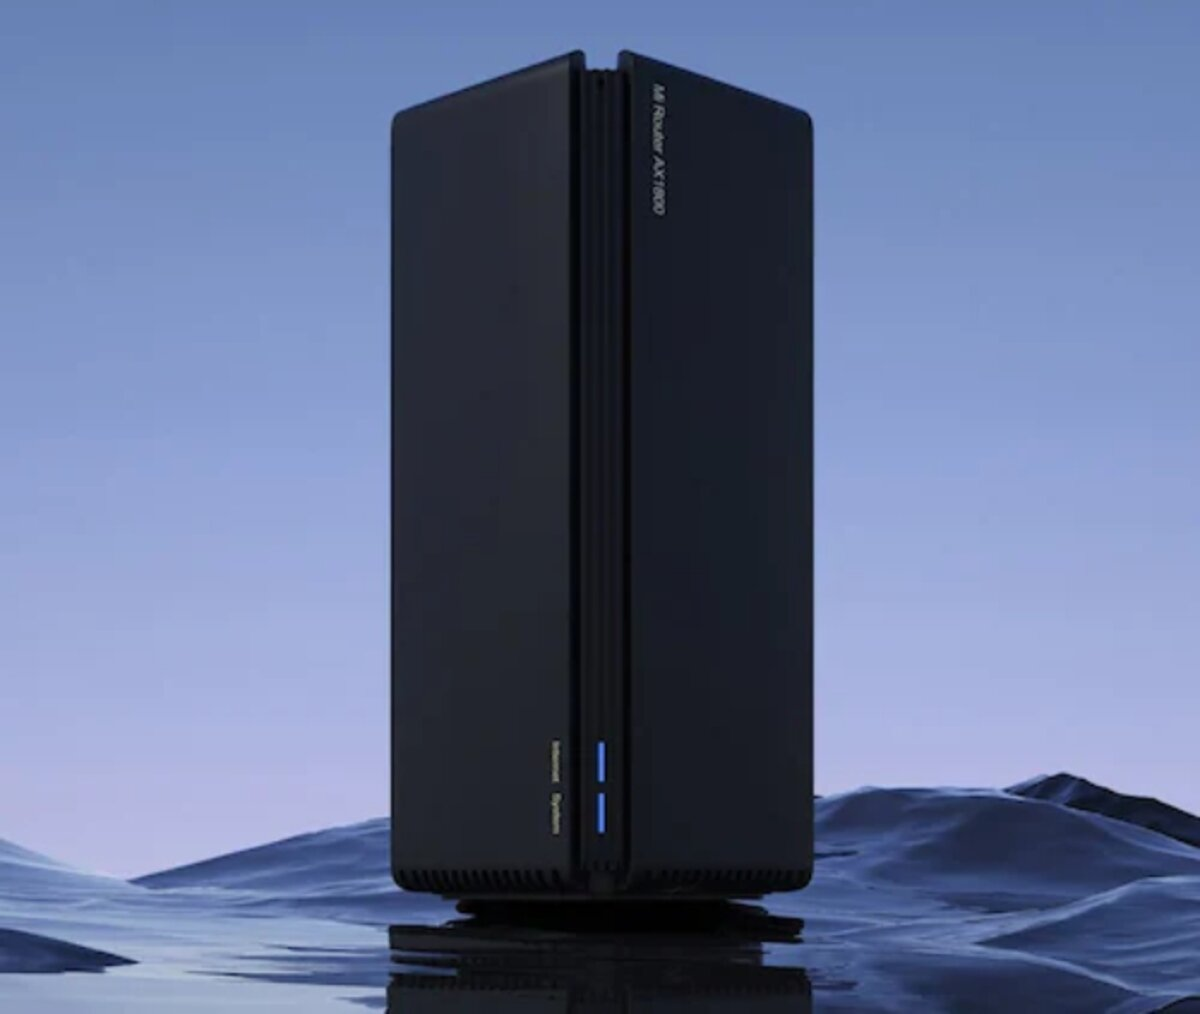 Mijia AX1800 router